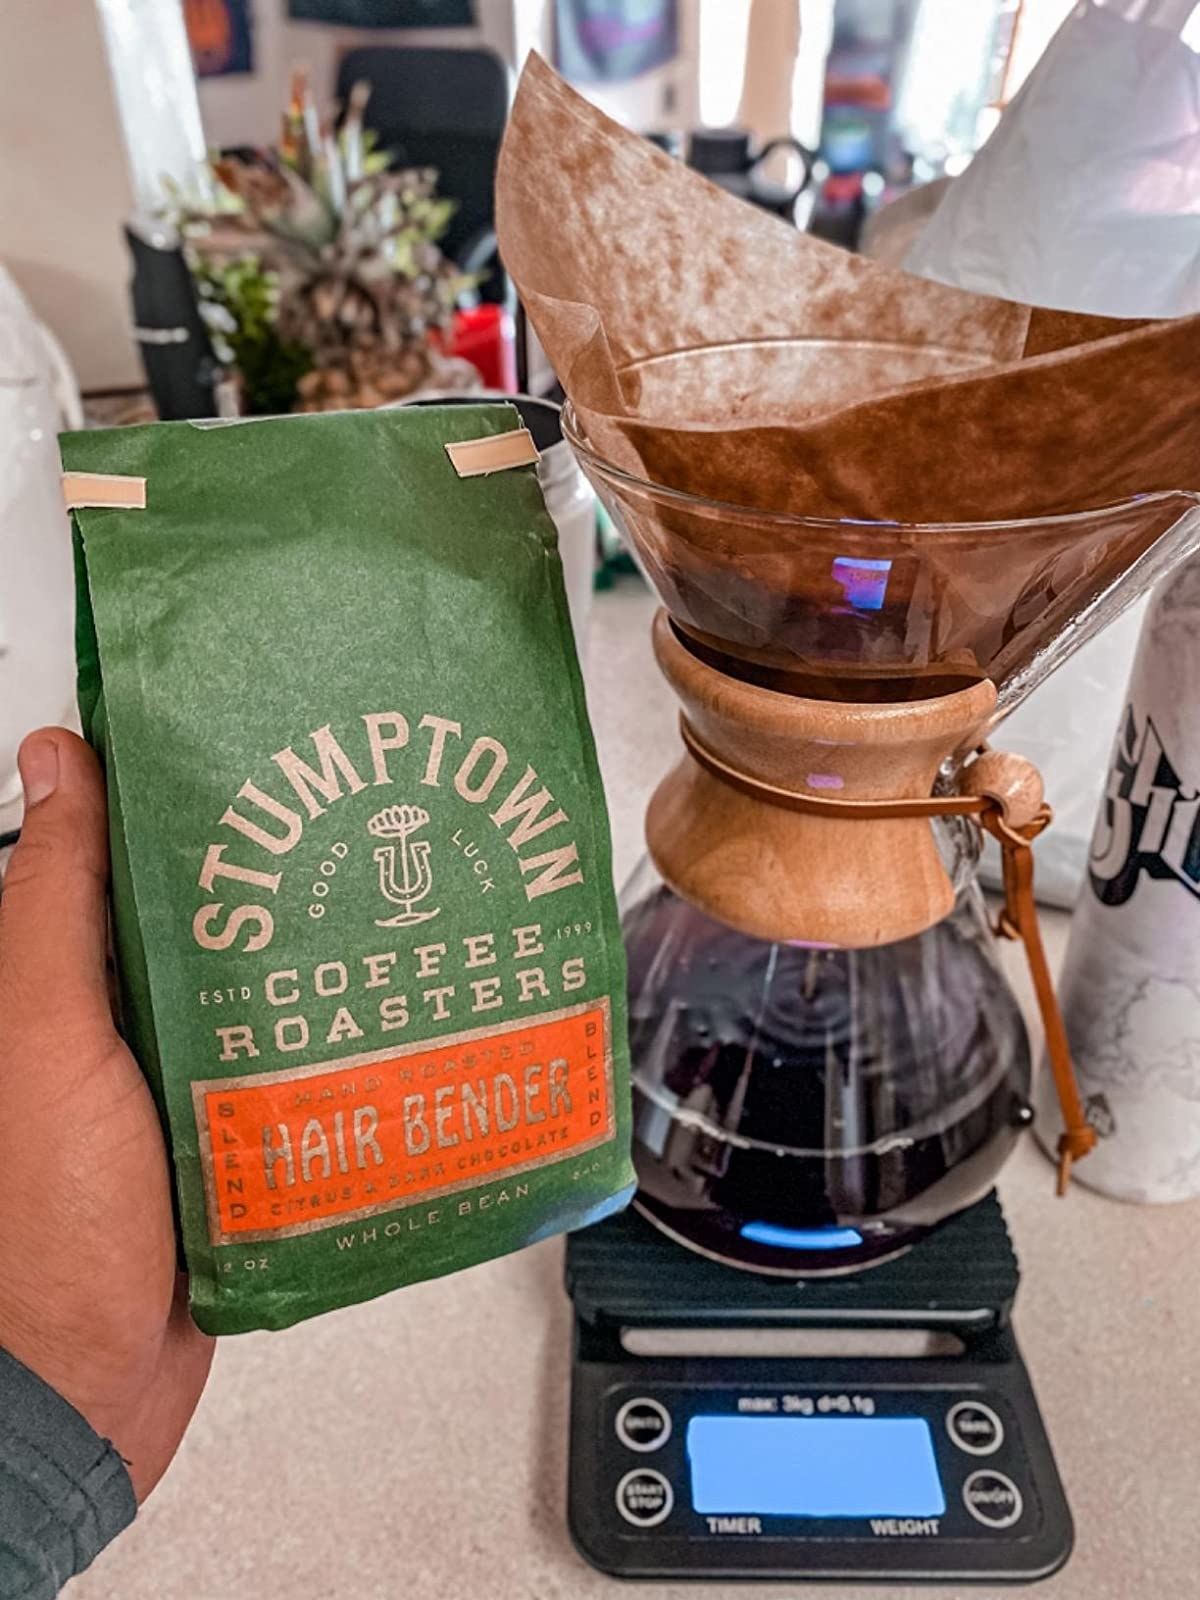 reviewer's photo of the scale weighing a Chemex full of coffee